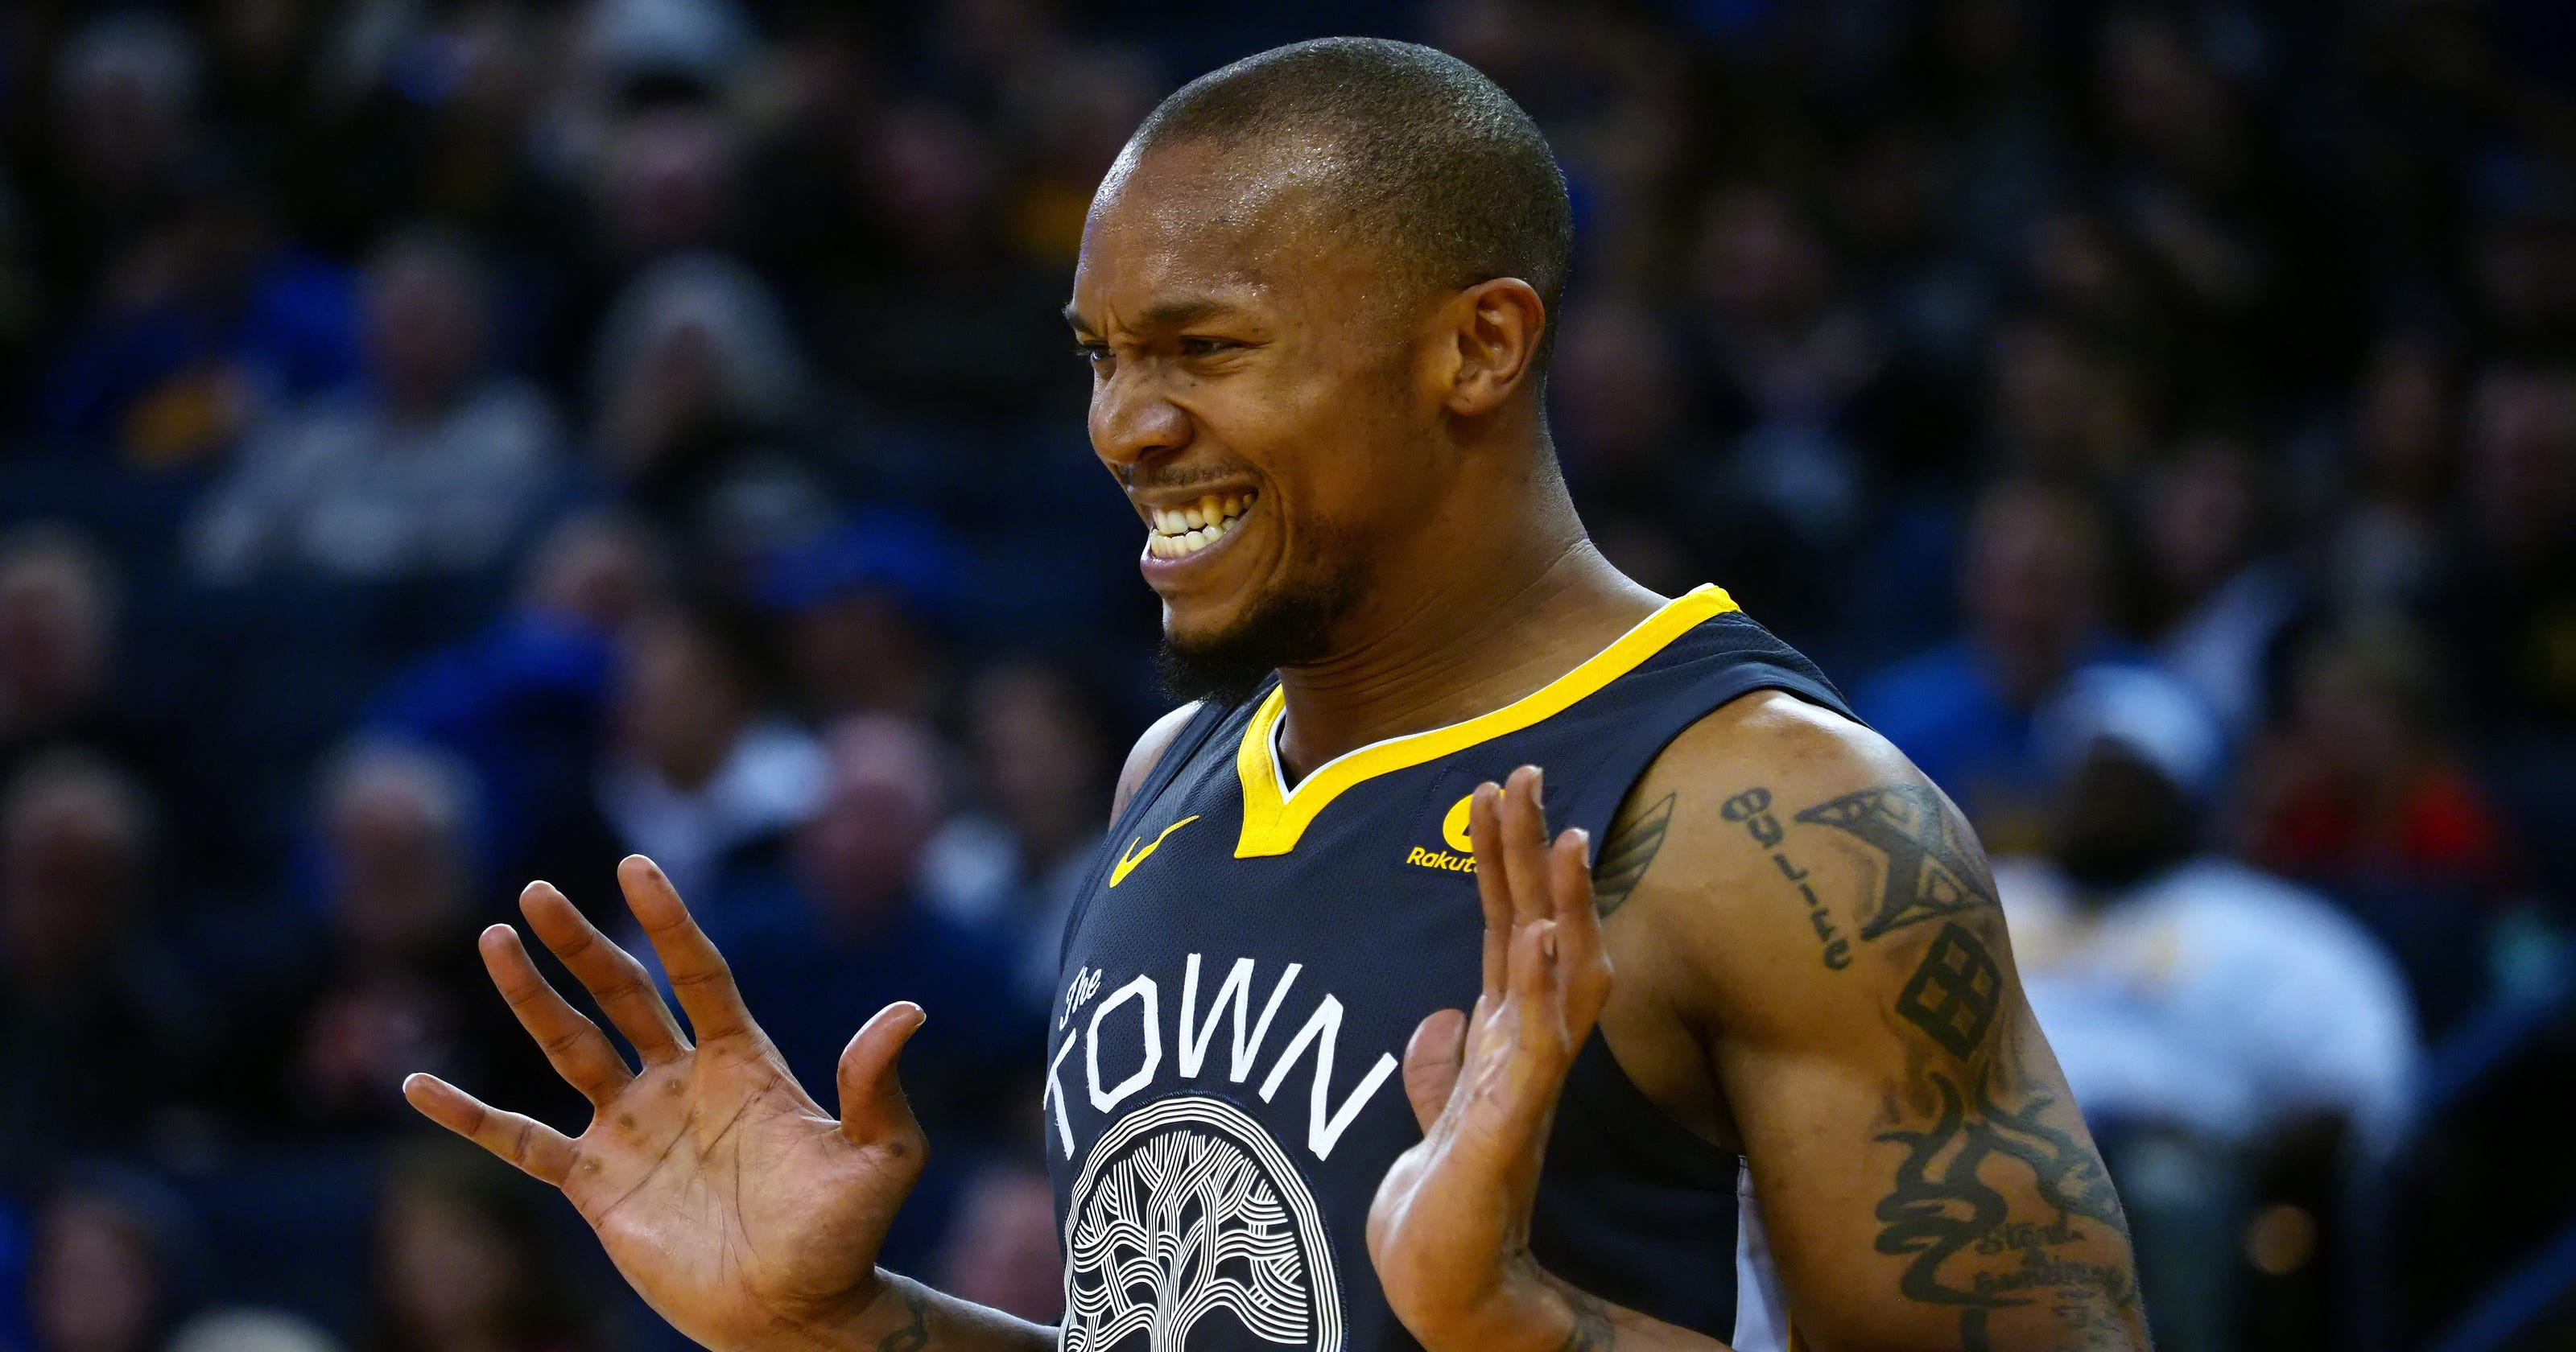 Warriors David West Gets Technical For Riding An